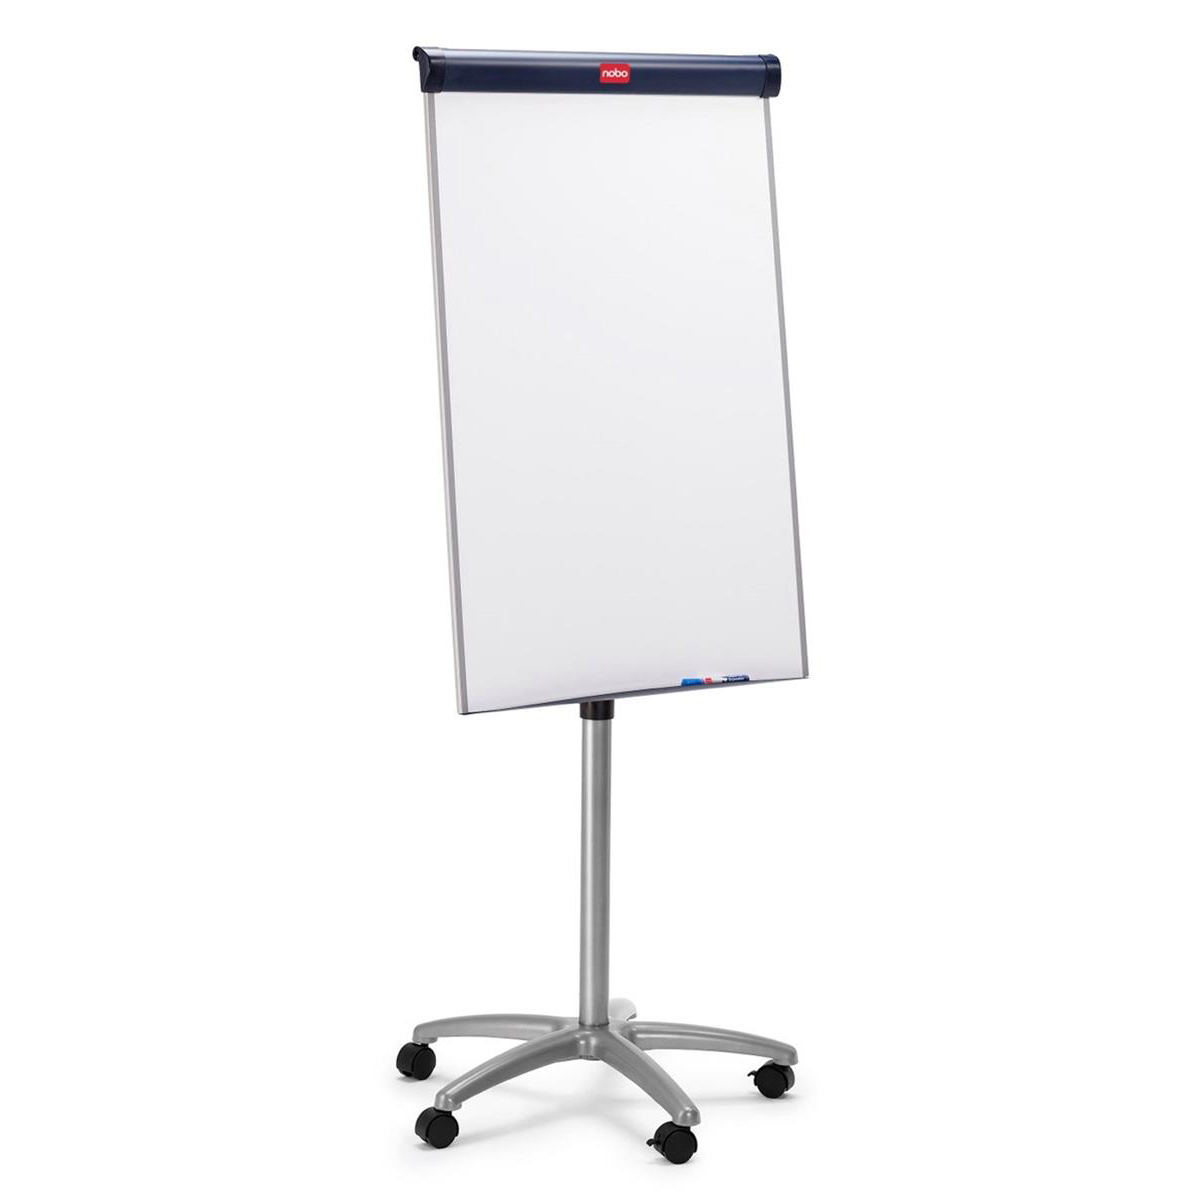 Nobo Classic Steel Mobile Magnetic Easel Height-adjustable 5 Castors W700xH1000mm Ref 1902386